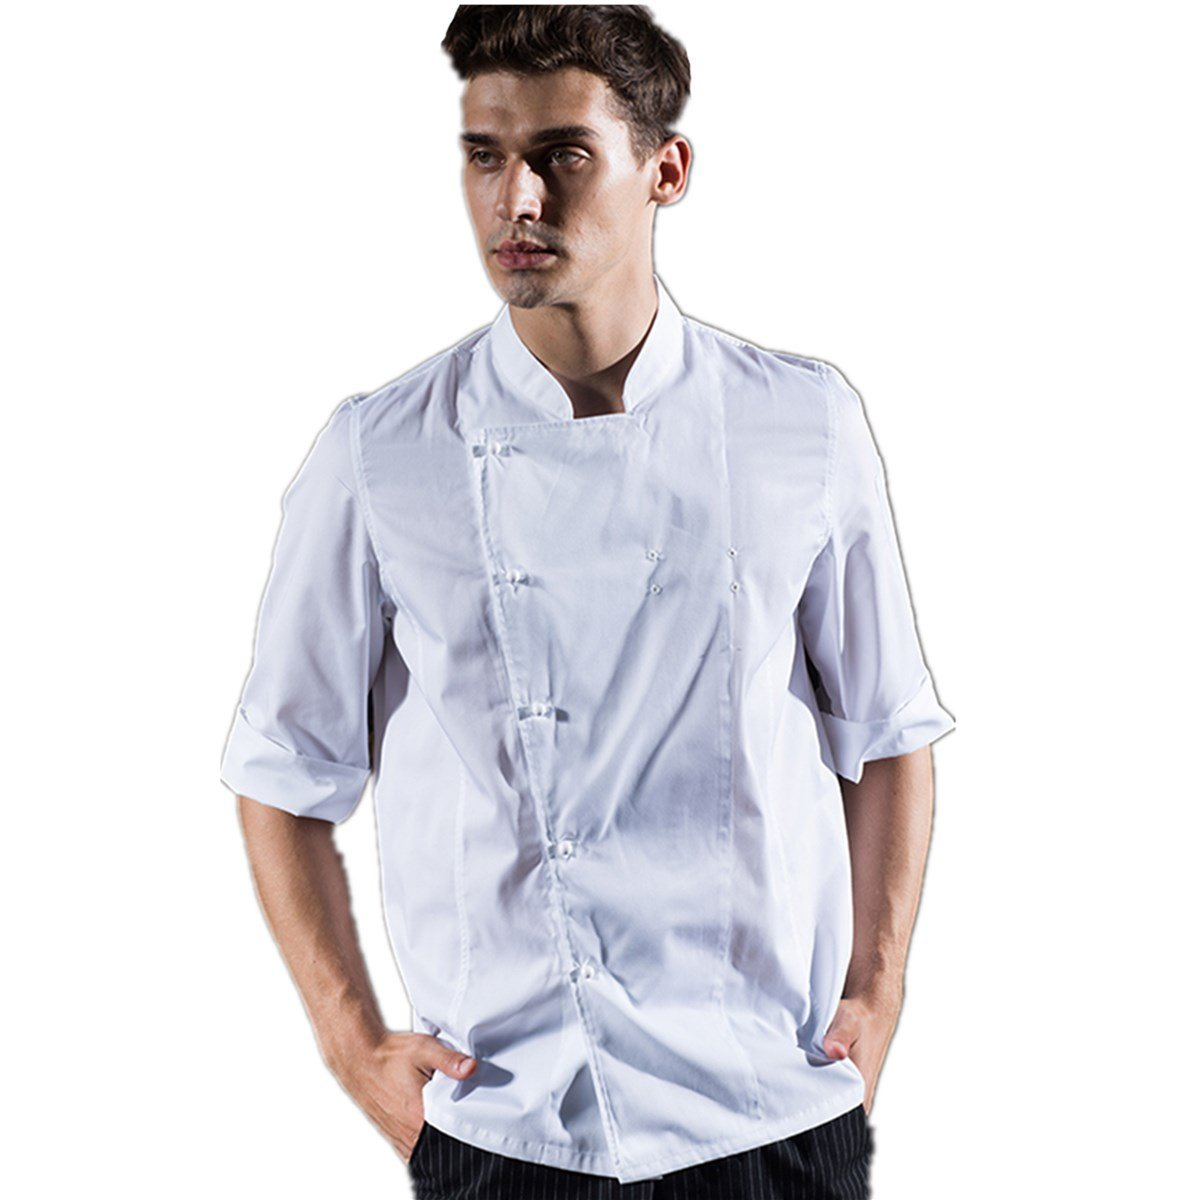 XINFU Chef Coat Men's Single-Breasted Front Placket Opening White A Thin Summer Dress for Chefs